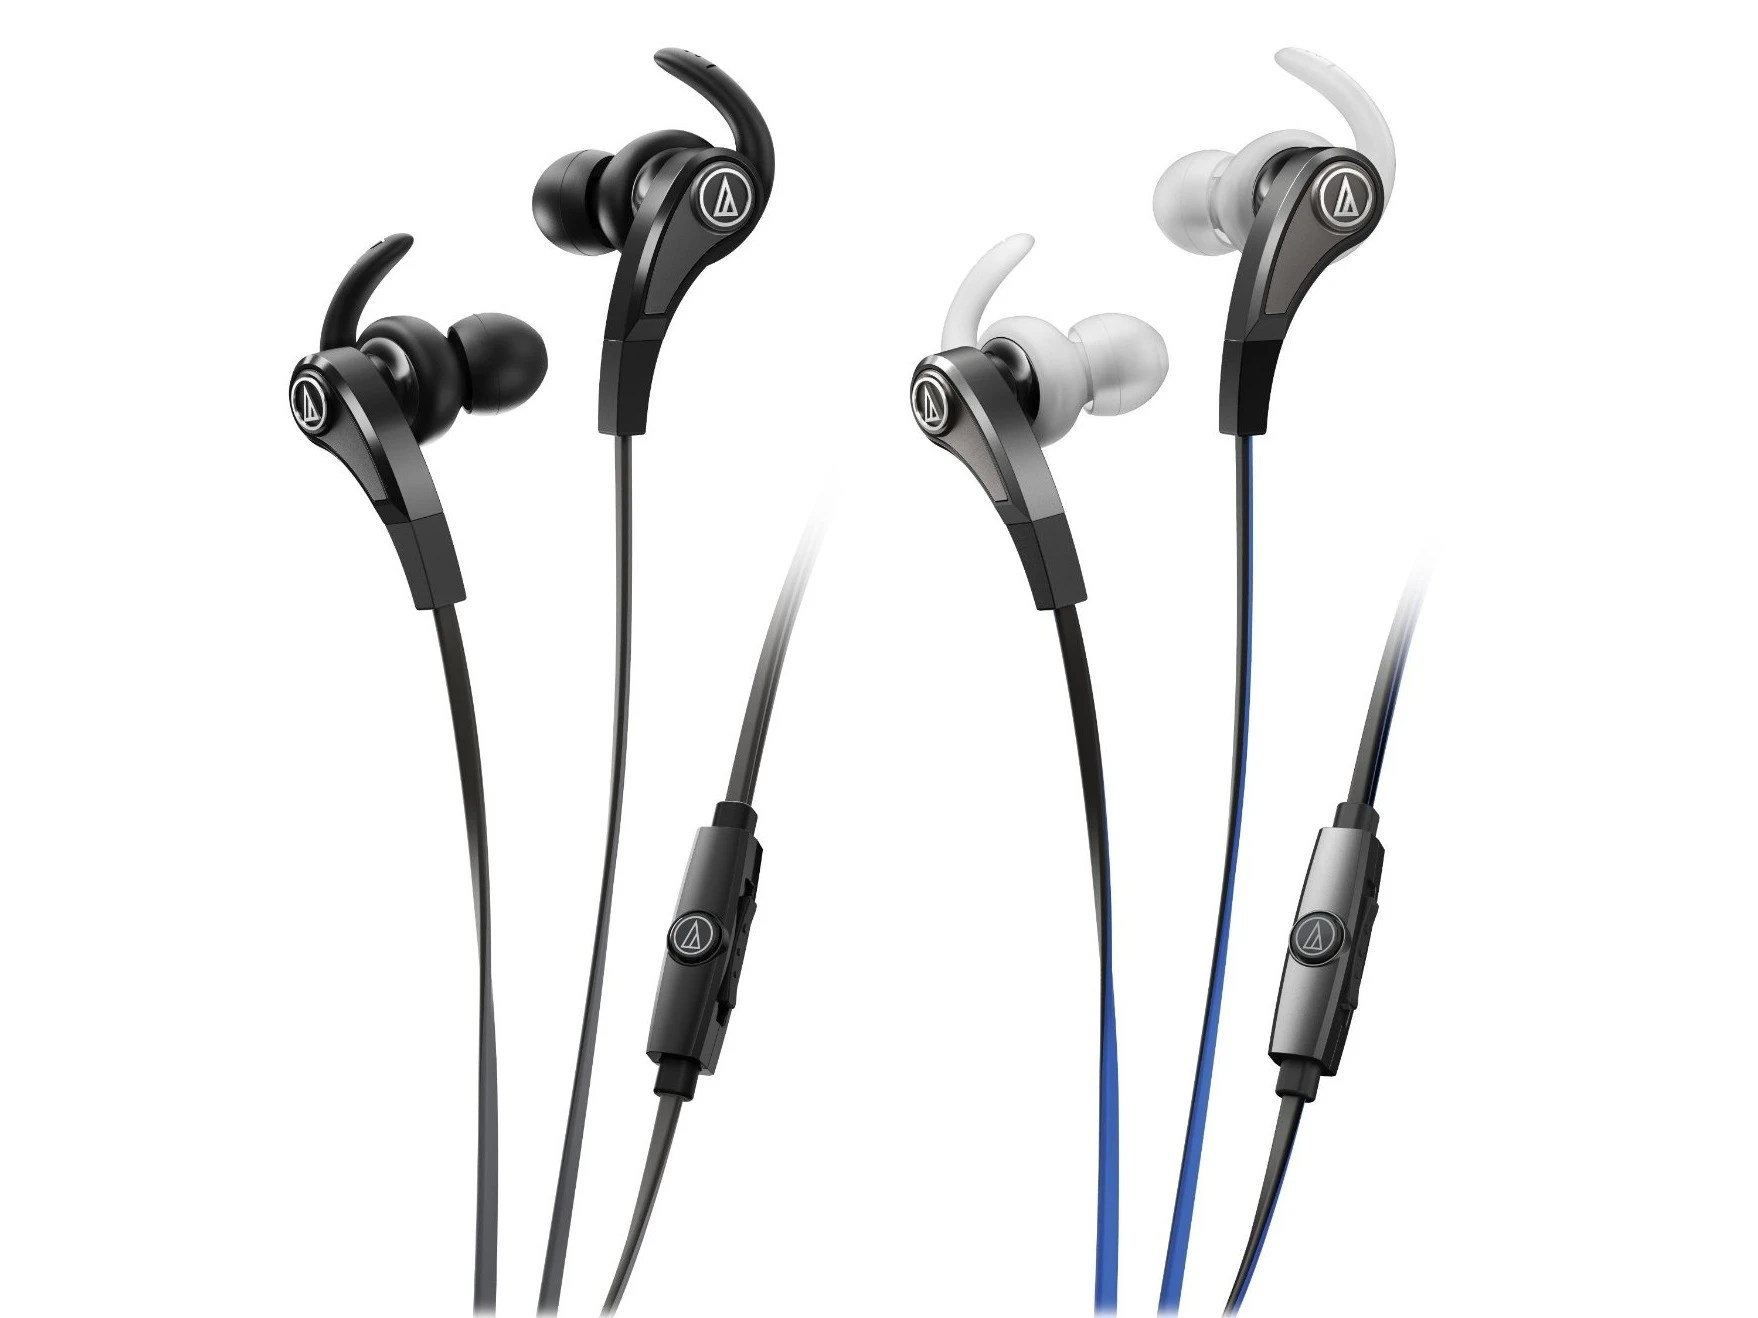 15 best hi-fi earbuds for your Android, iPhone, and other